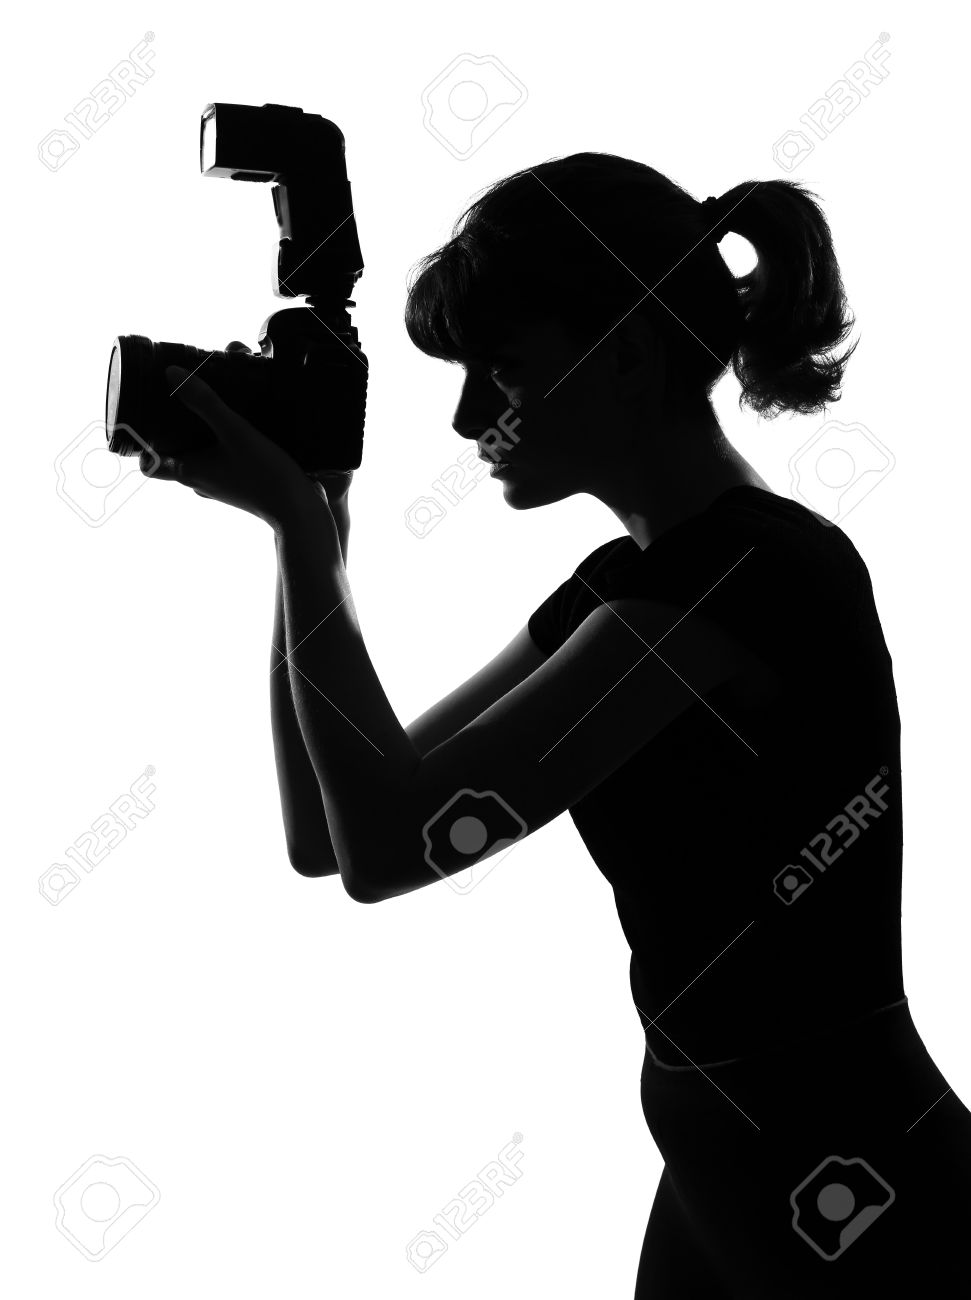 portrait silhouette in shadow of a young woman photographer holding a camera  in studio on white background isolated Stock Photo - 9800024